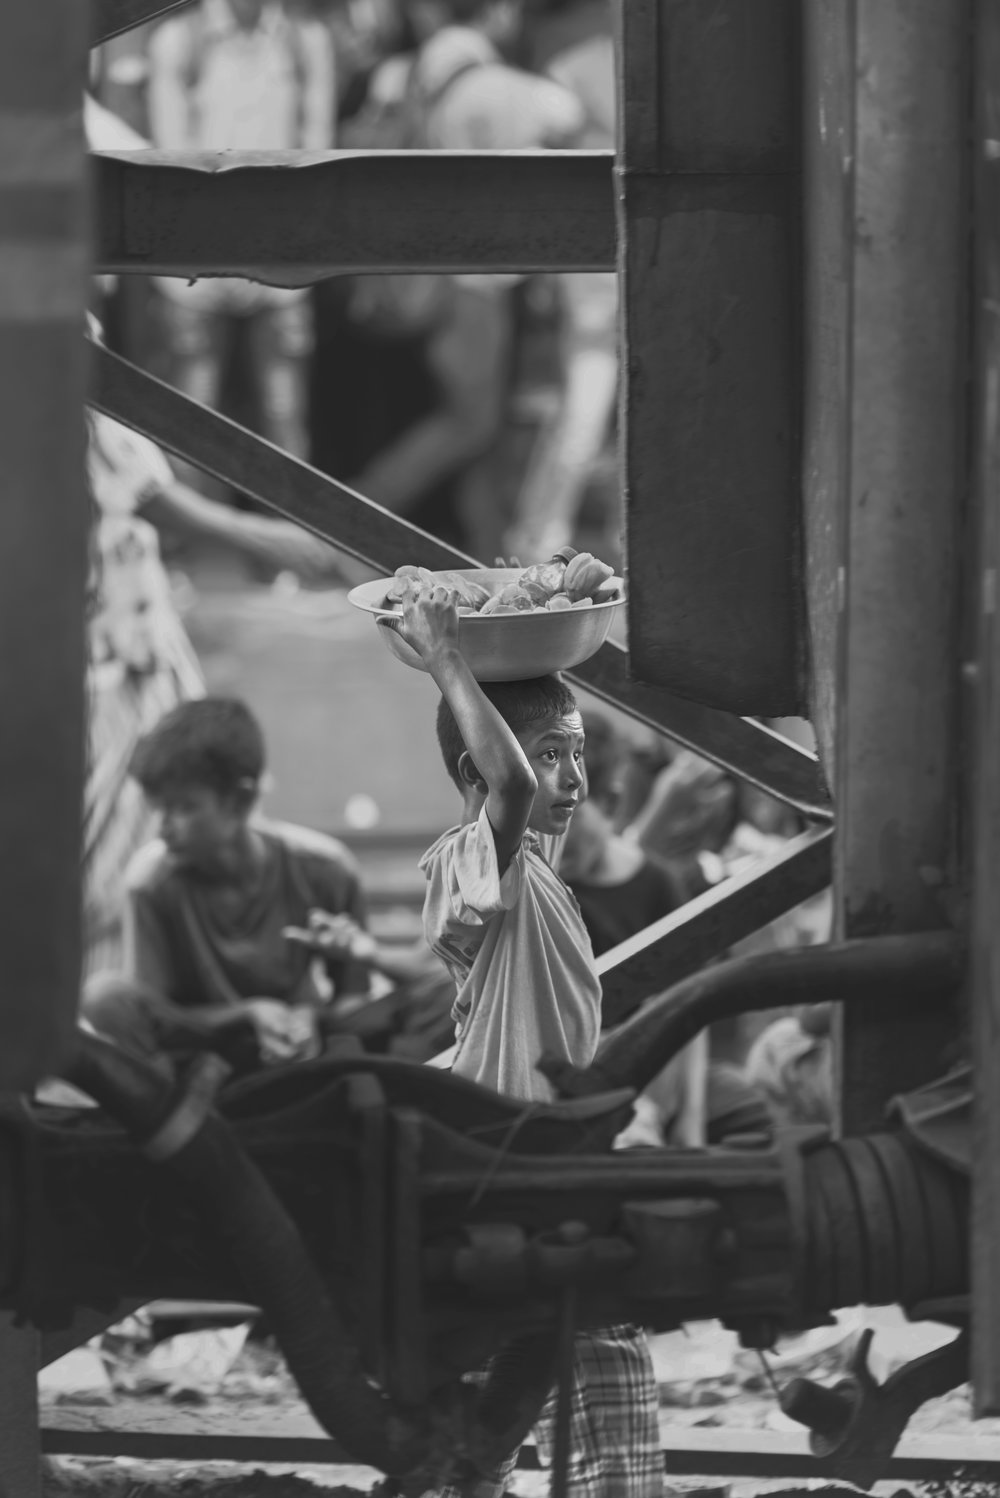 Slum communities face forcible removal, which also makes health follow-ups difficult. Source: Asif Aman via Unsplash